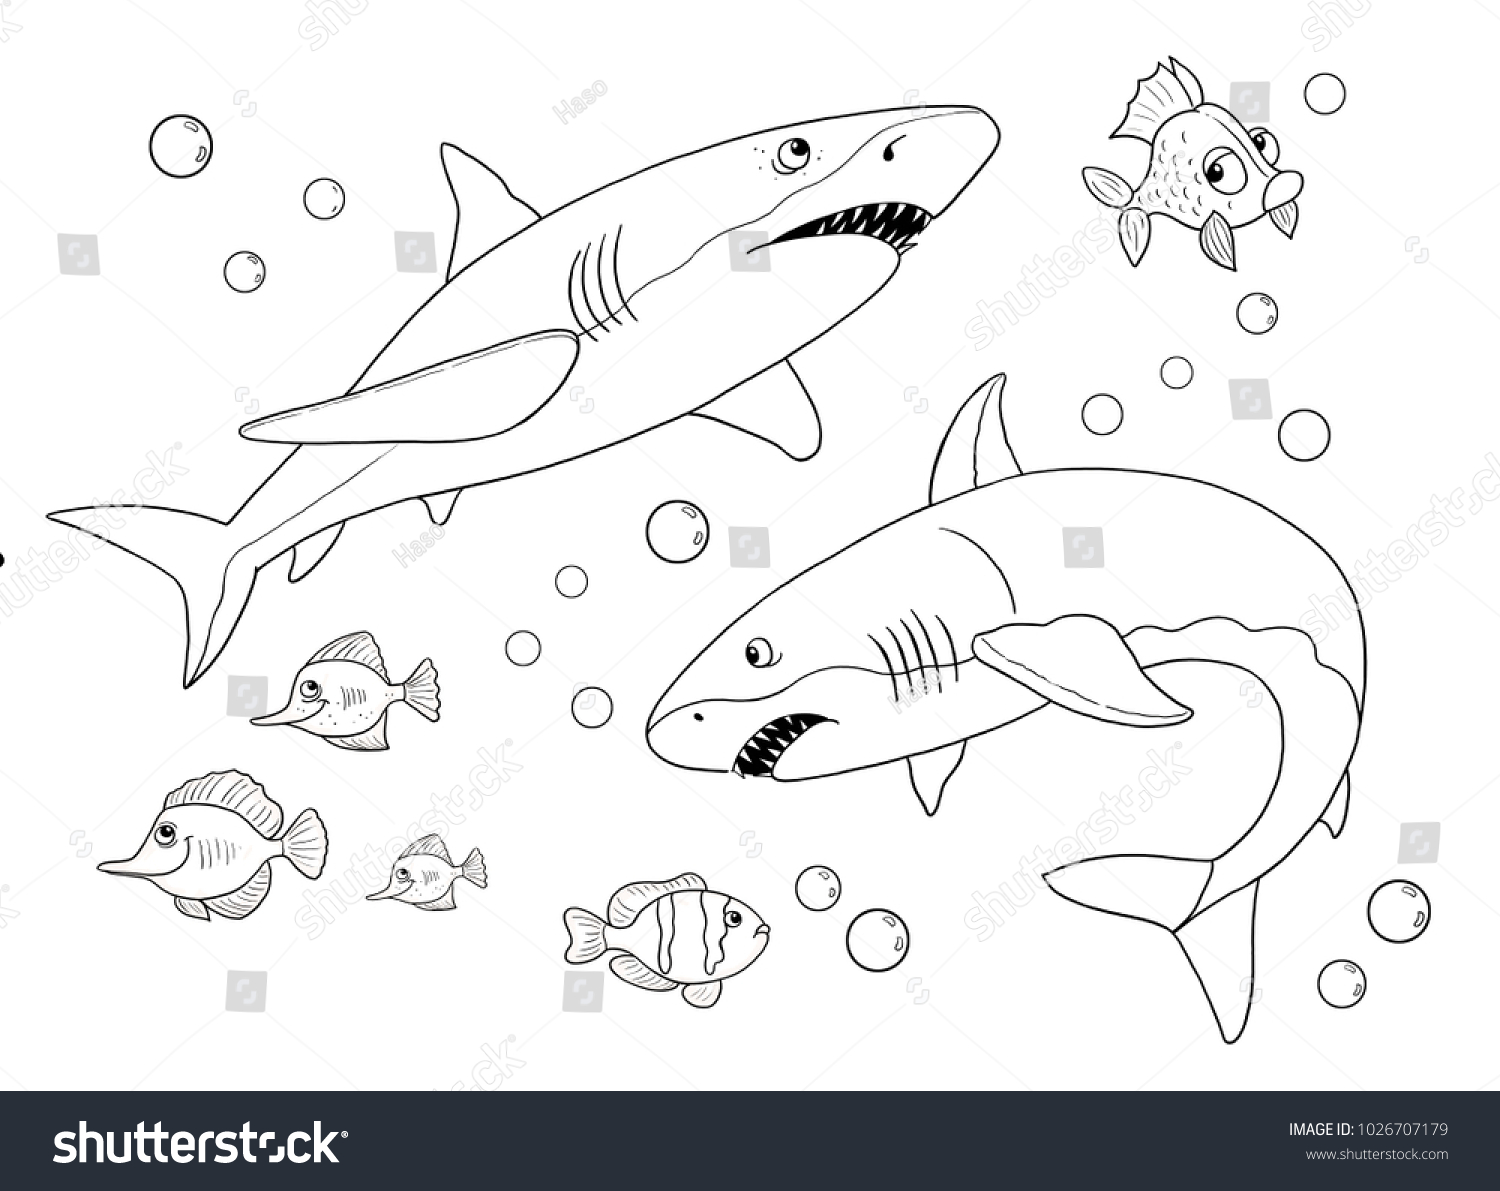 Sharks Coloring Page Cute And Funny Cartoon Characters